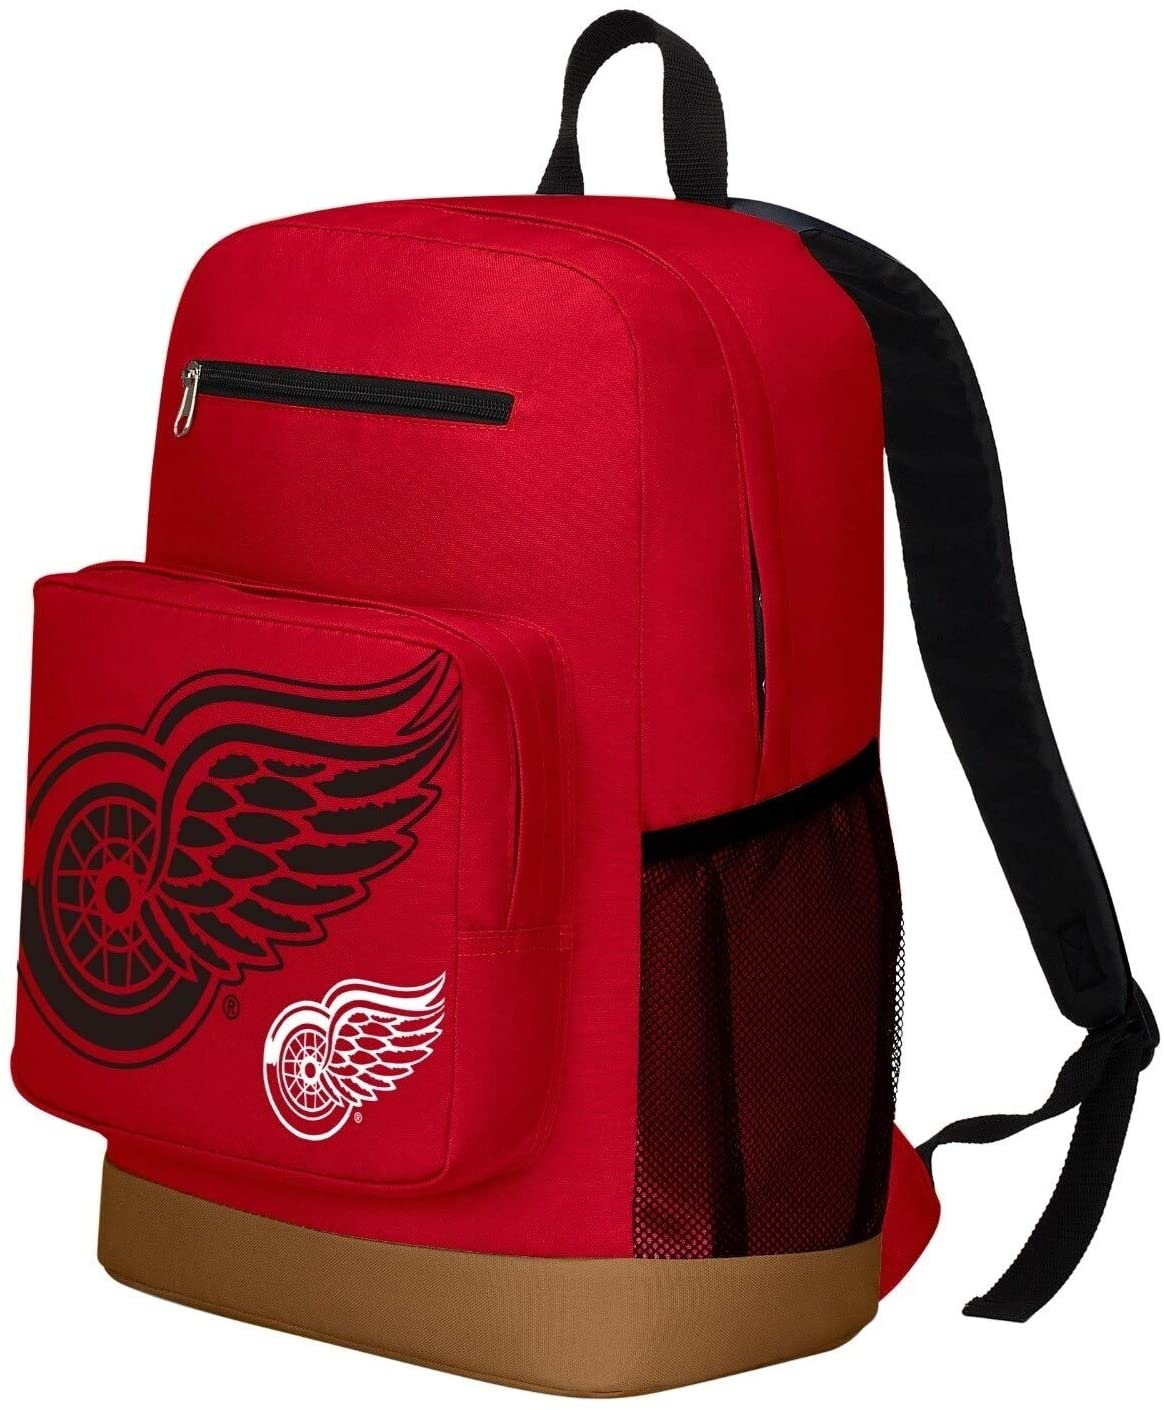 MISC Detroit Redwings Playmaker Backpack Red Nylon